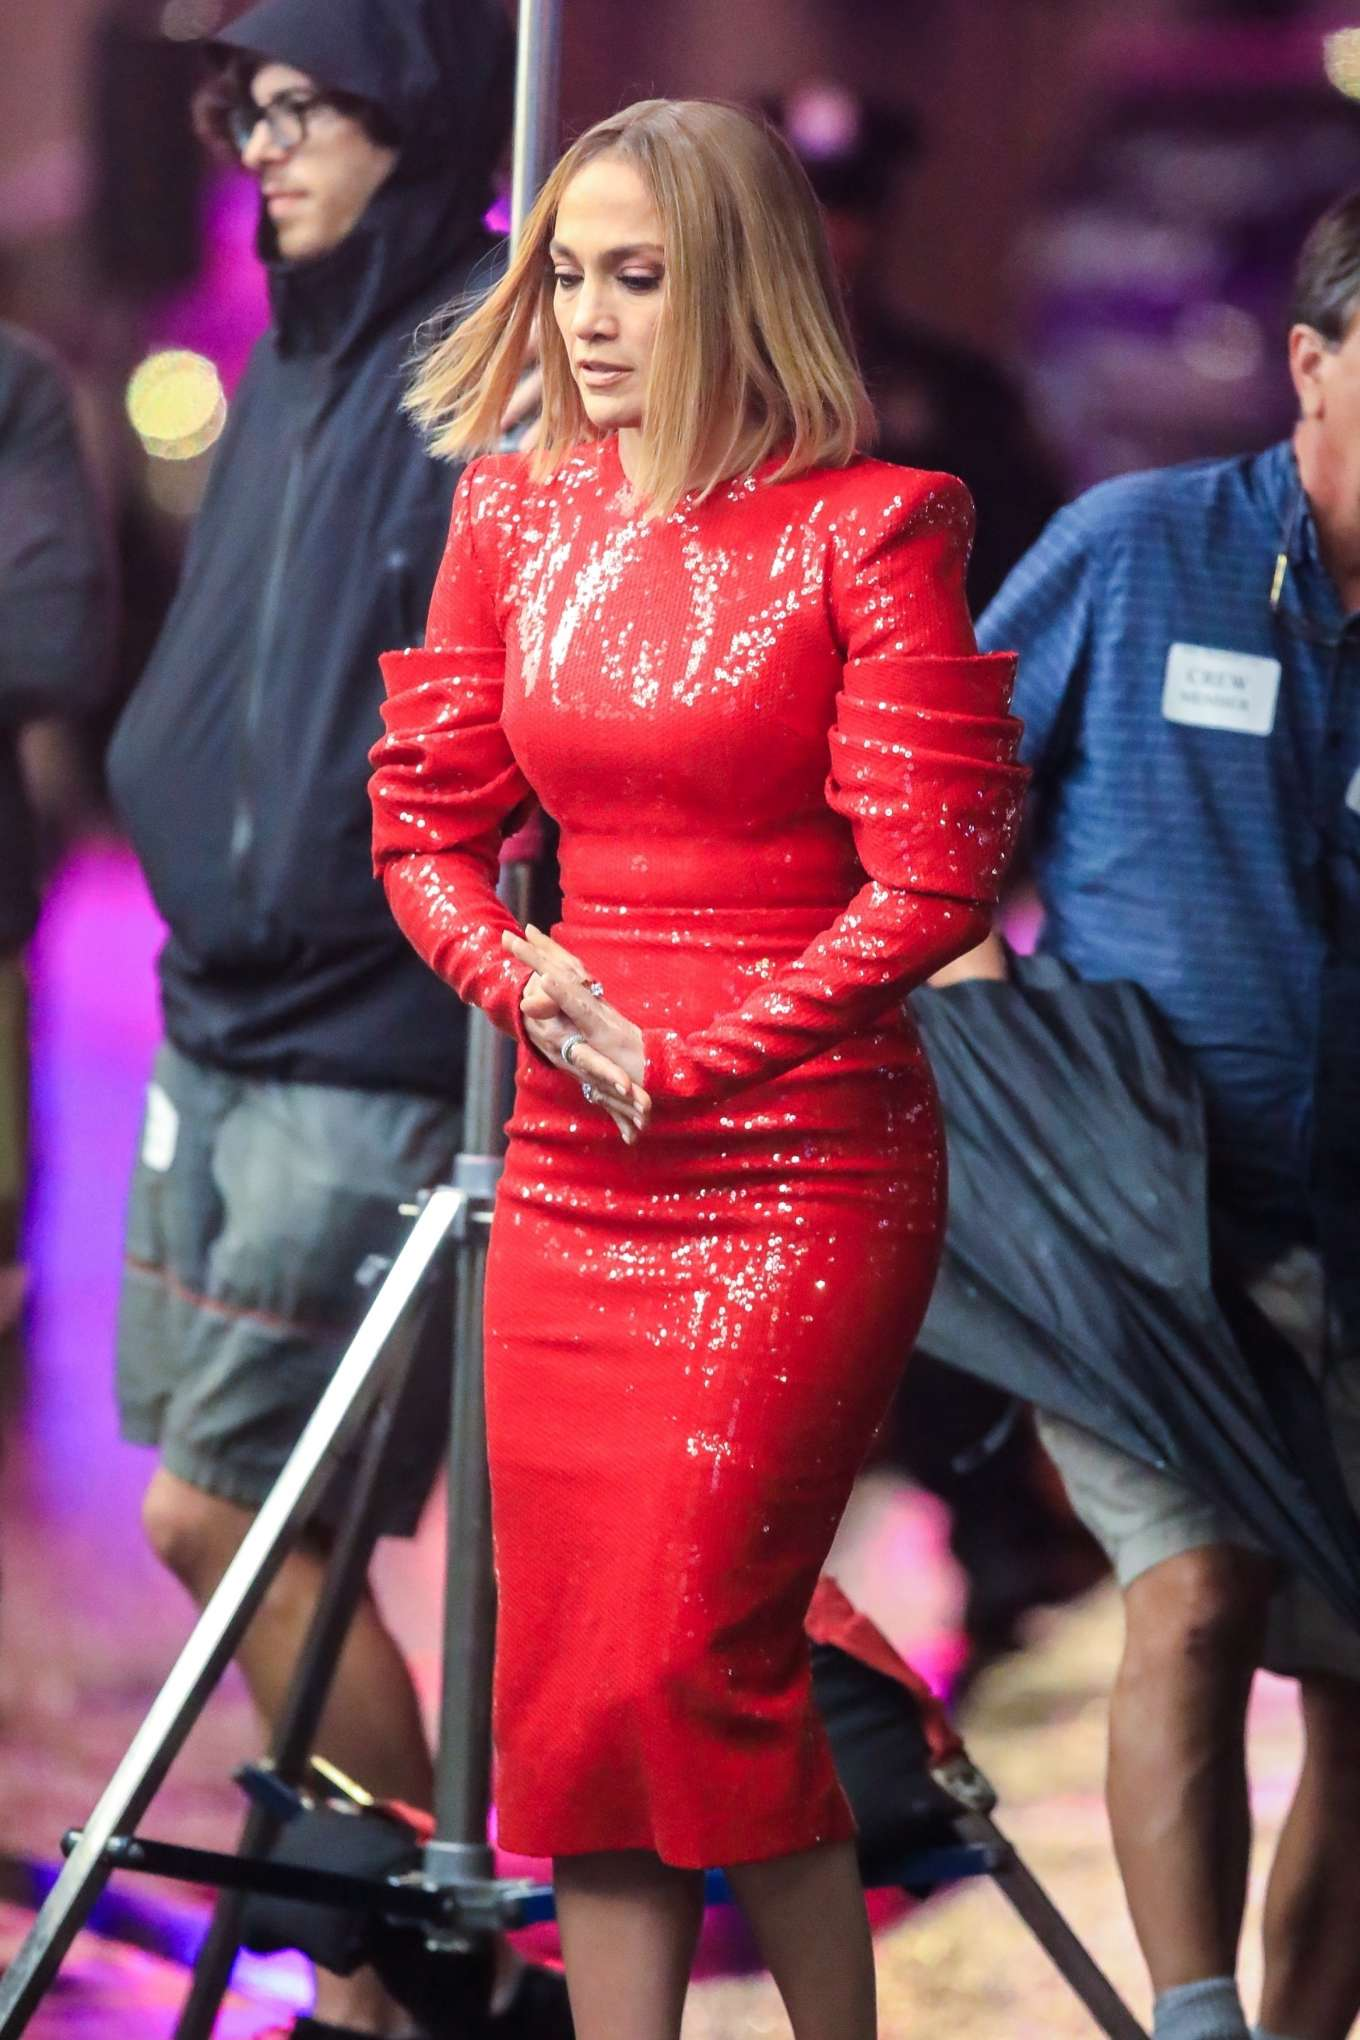 Jennifer Lopez in Red Dress - Filming 'Marry Me' in New York City